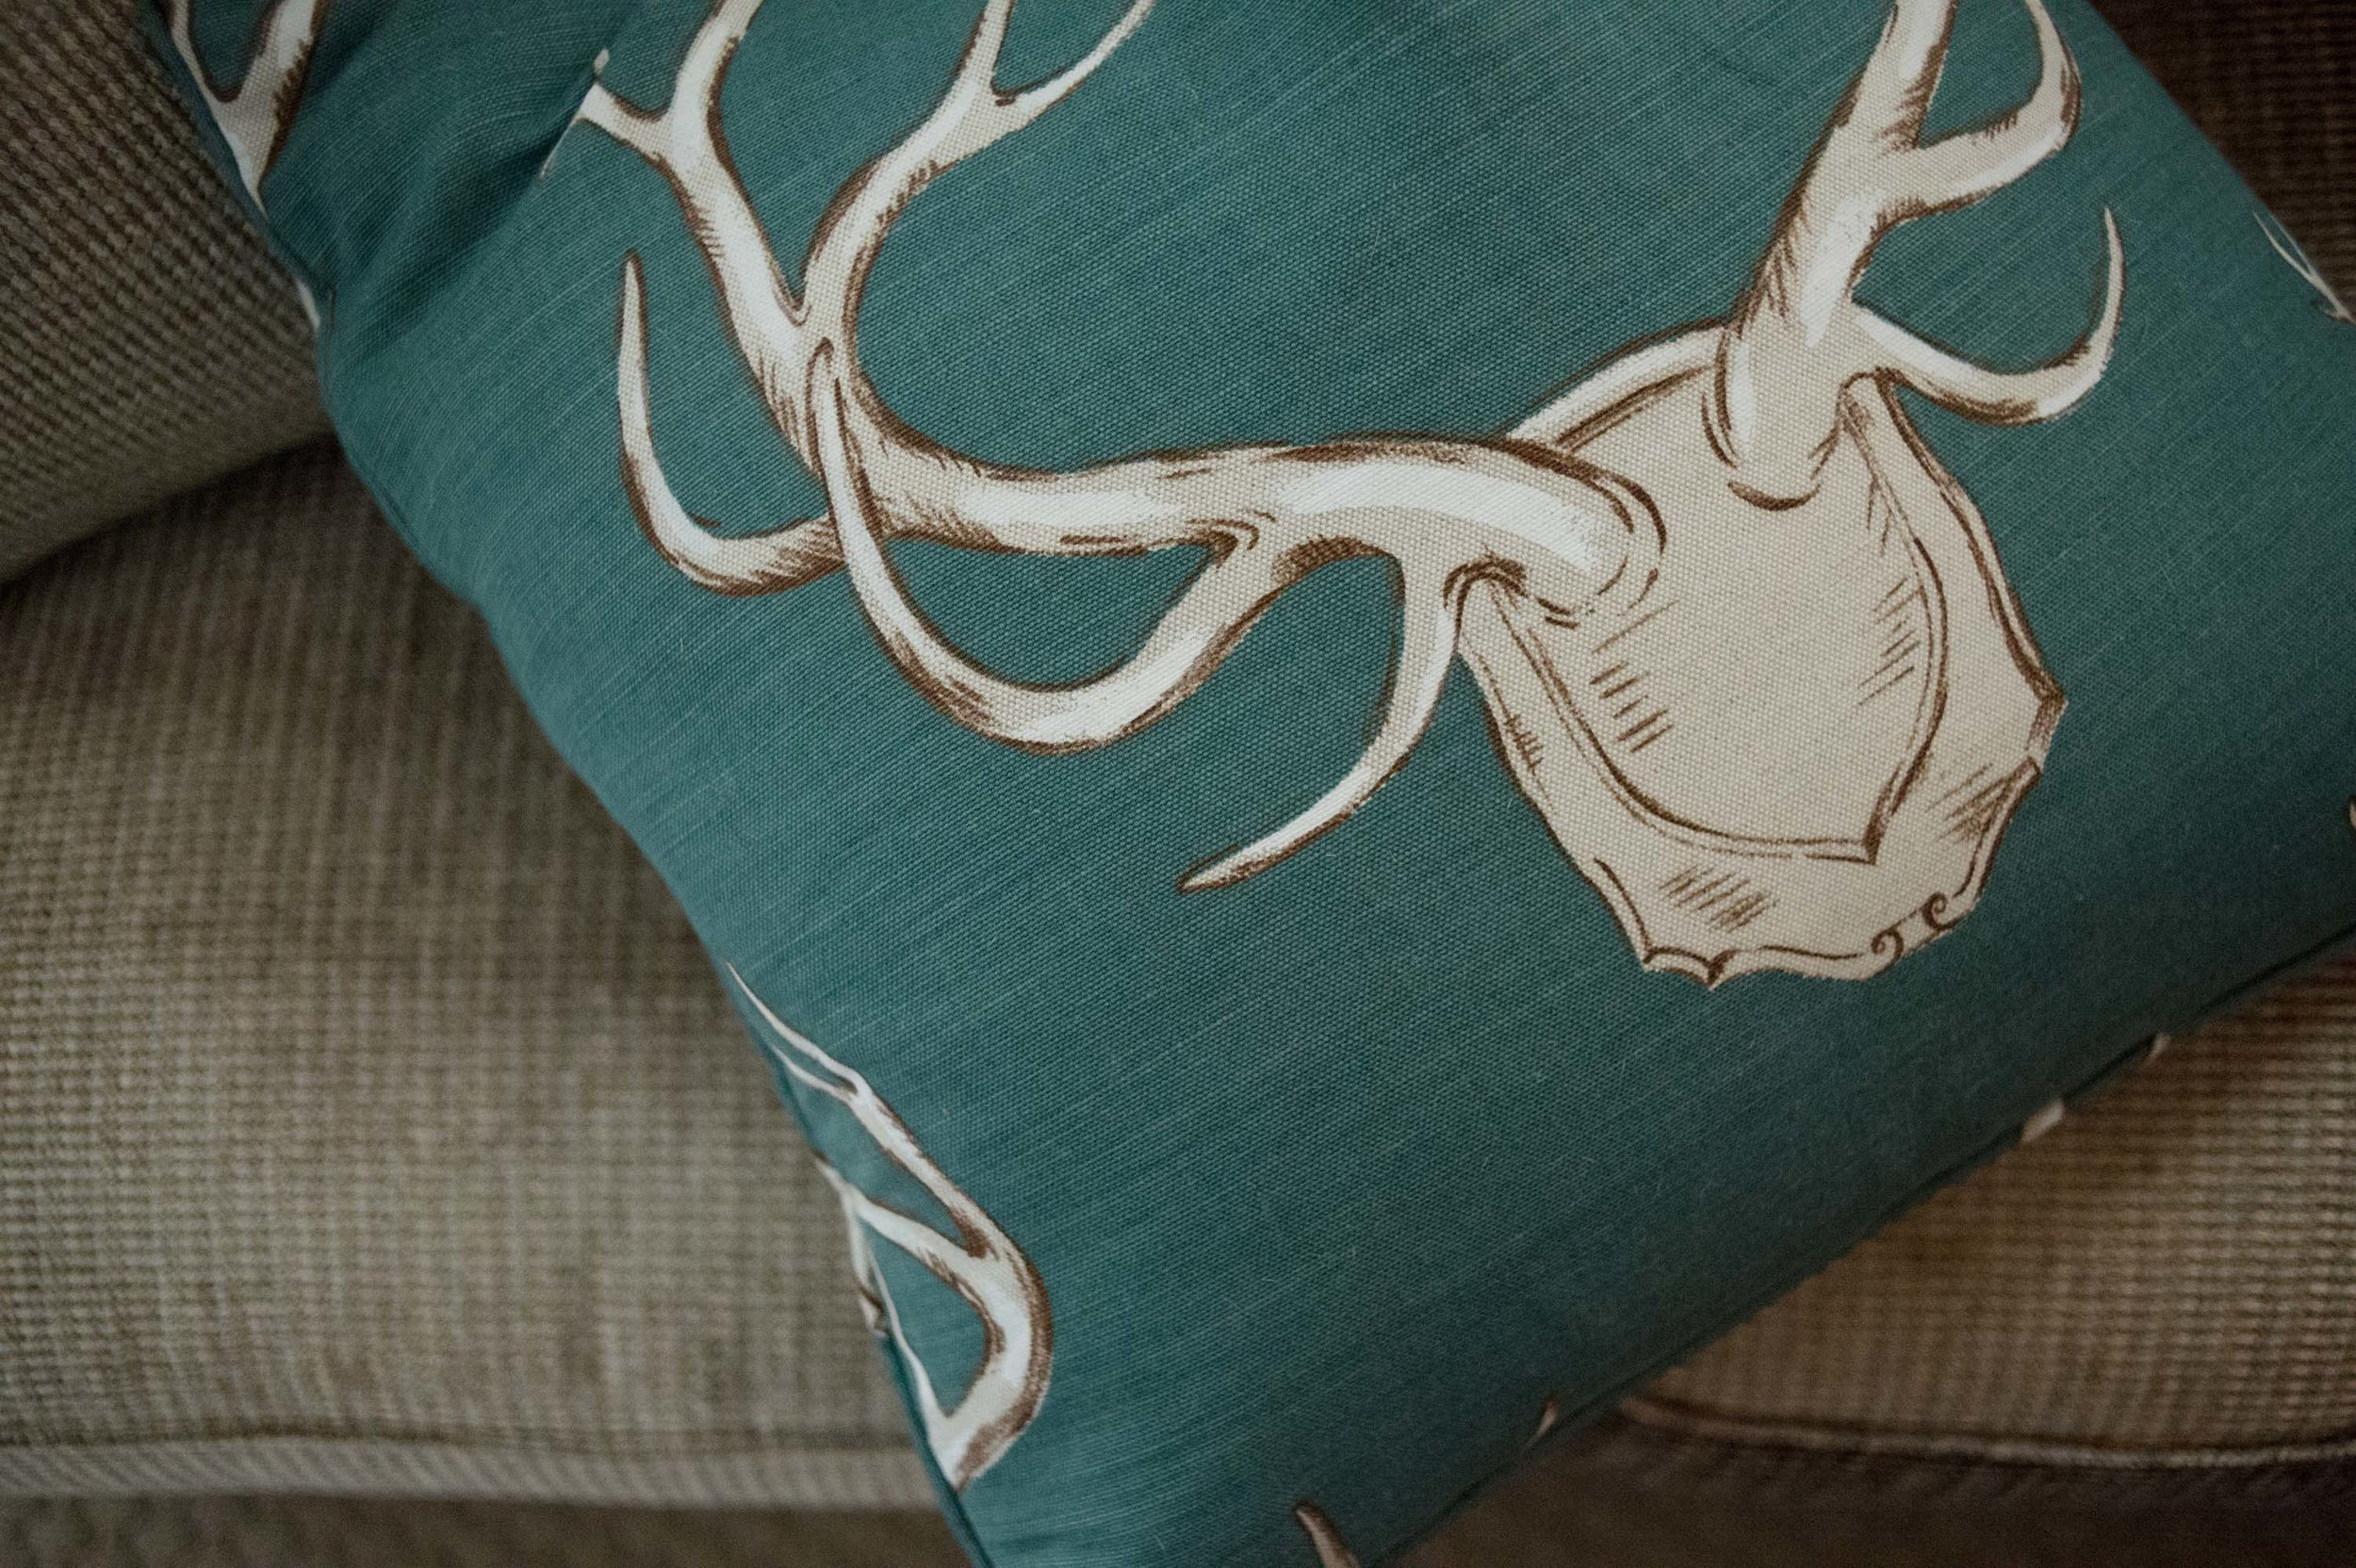 Green pillow on a sofa